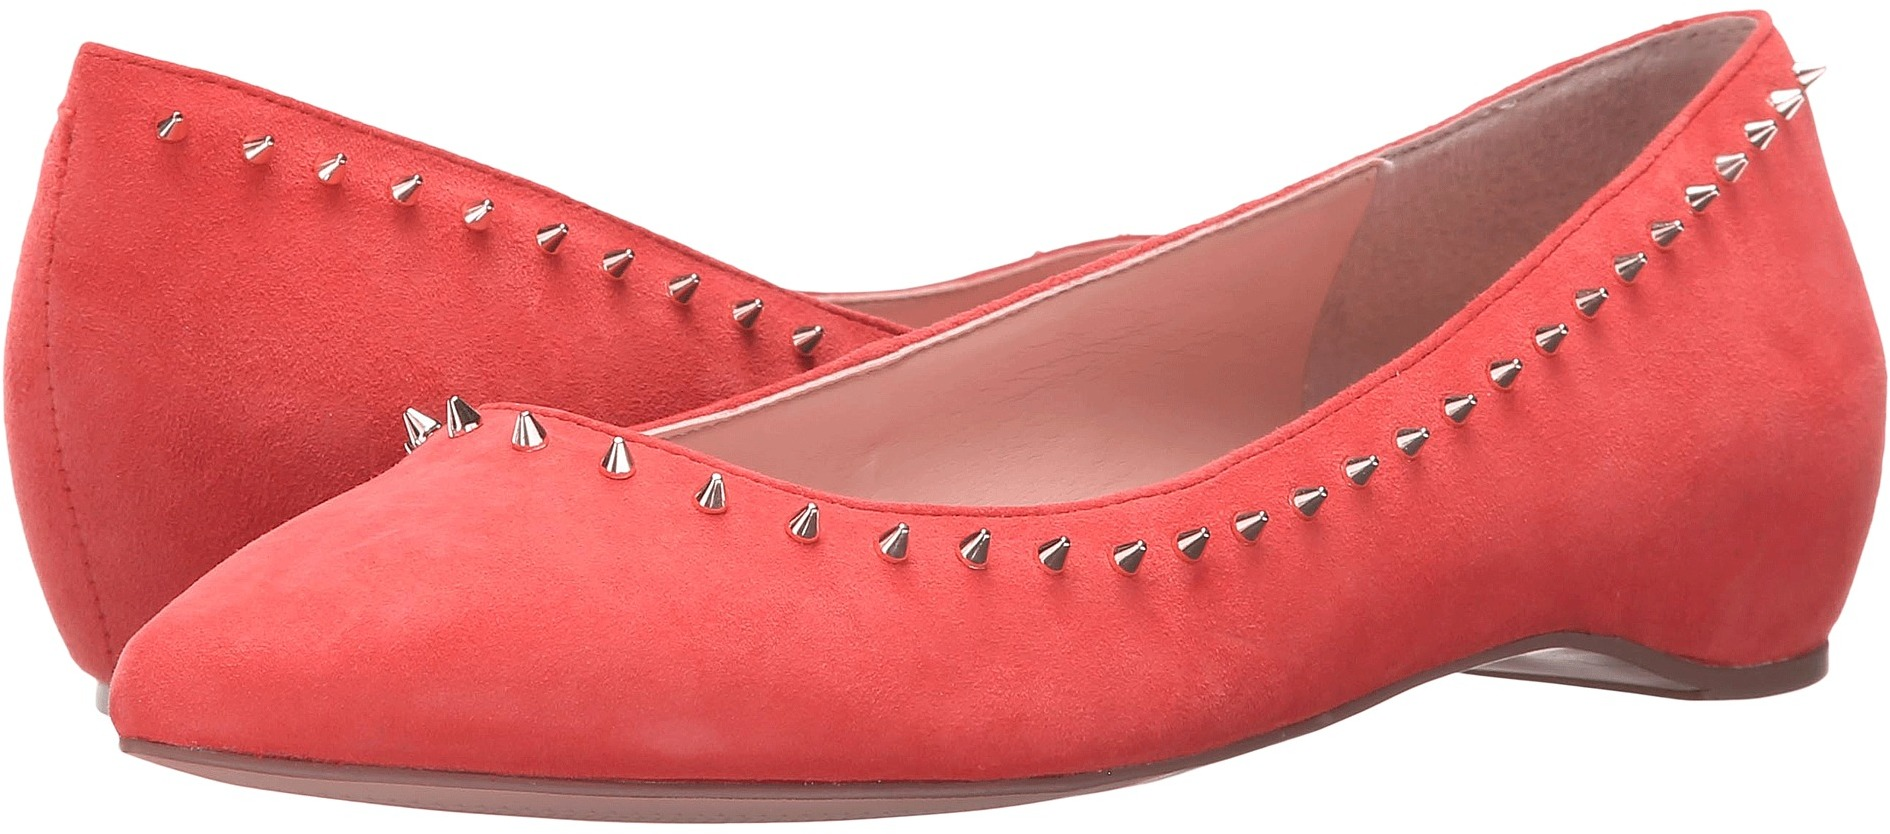 Ivanka Trump Cecille Red Suede